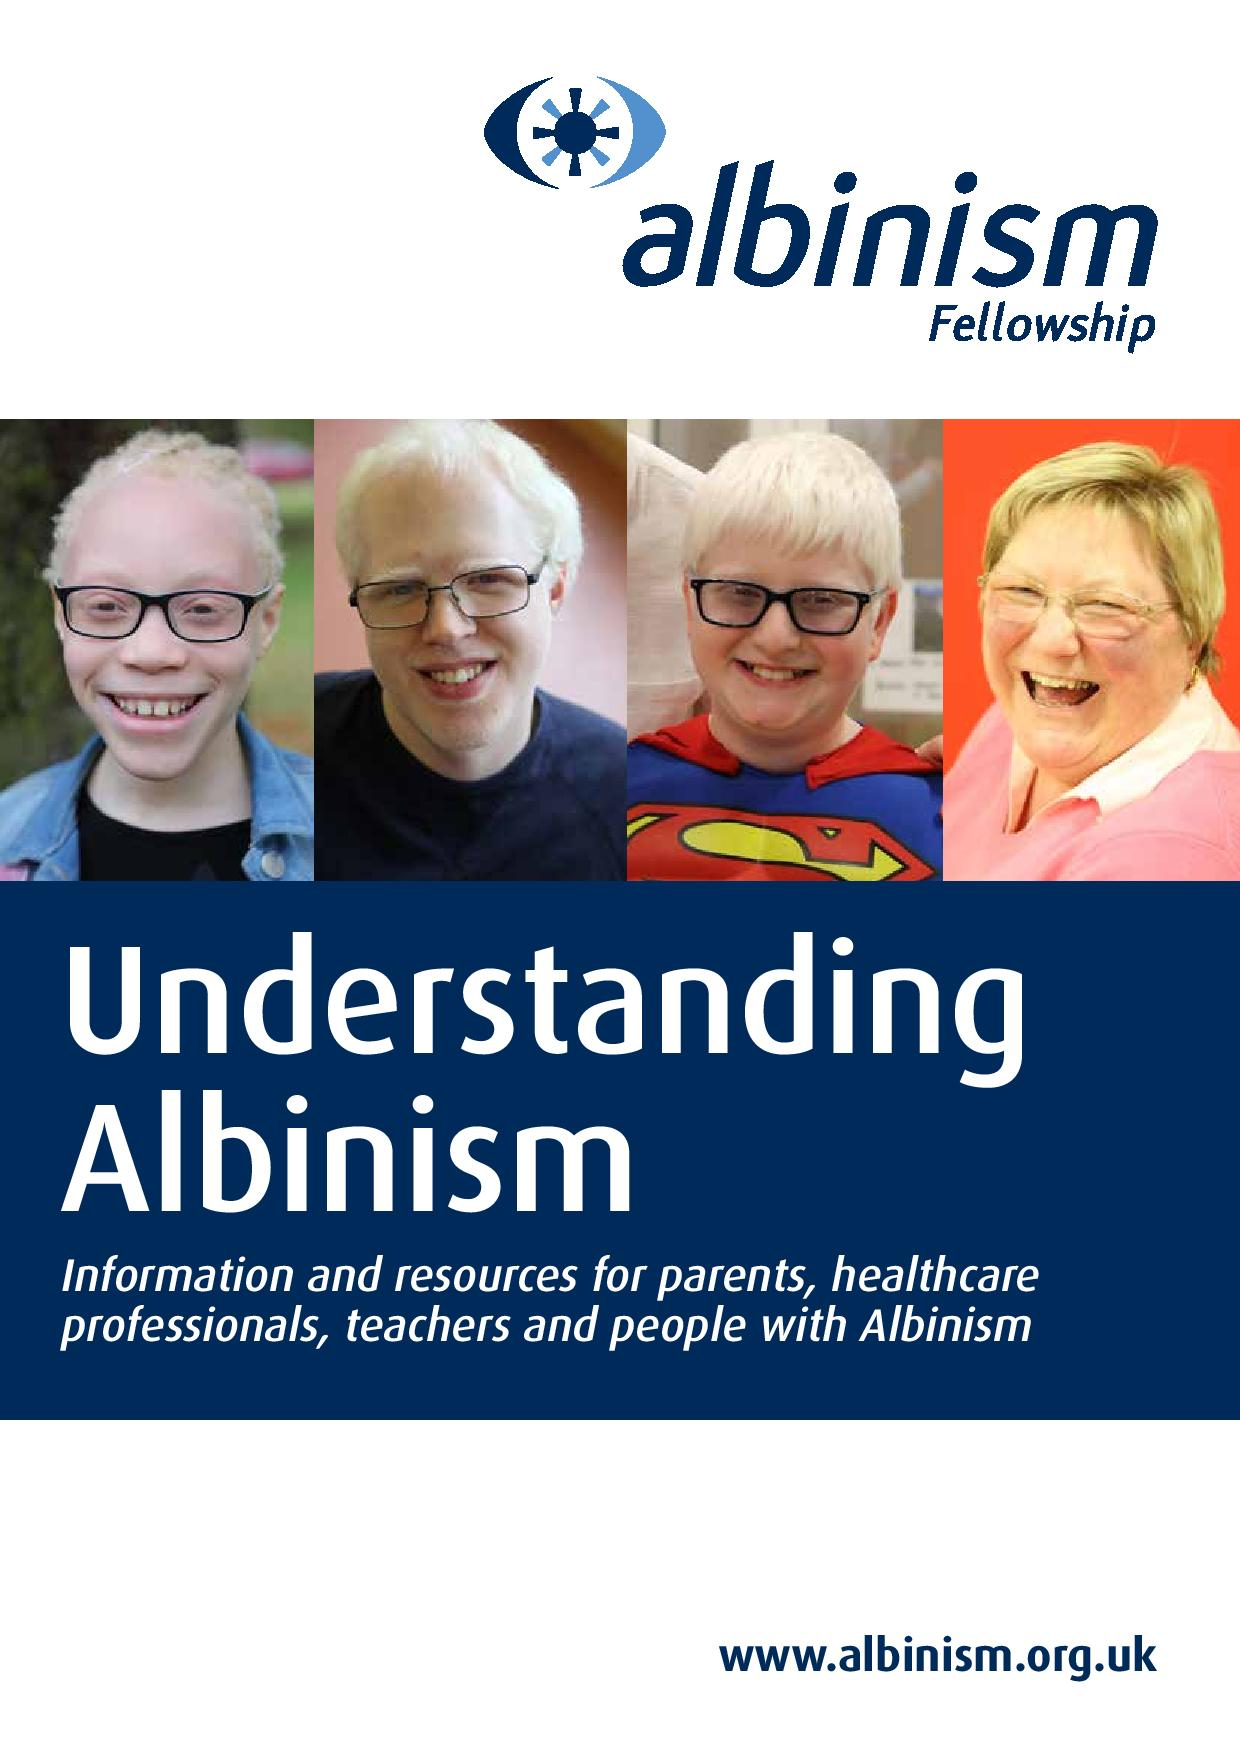 Albinism Awareness Day